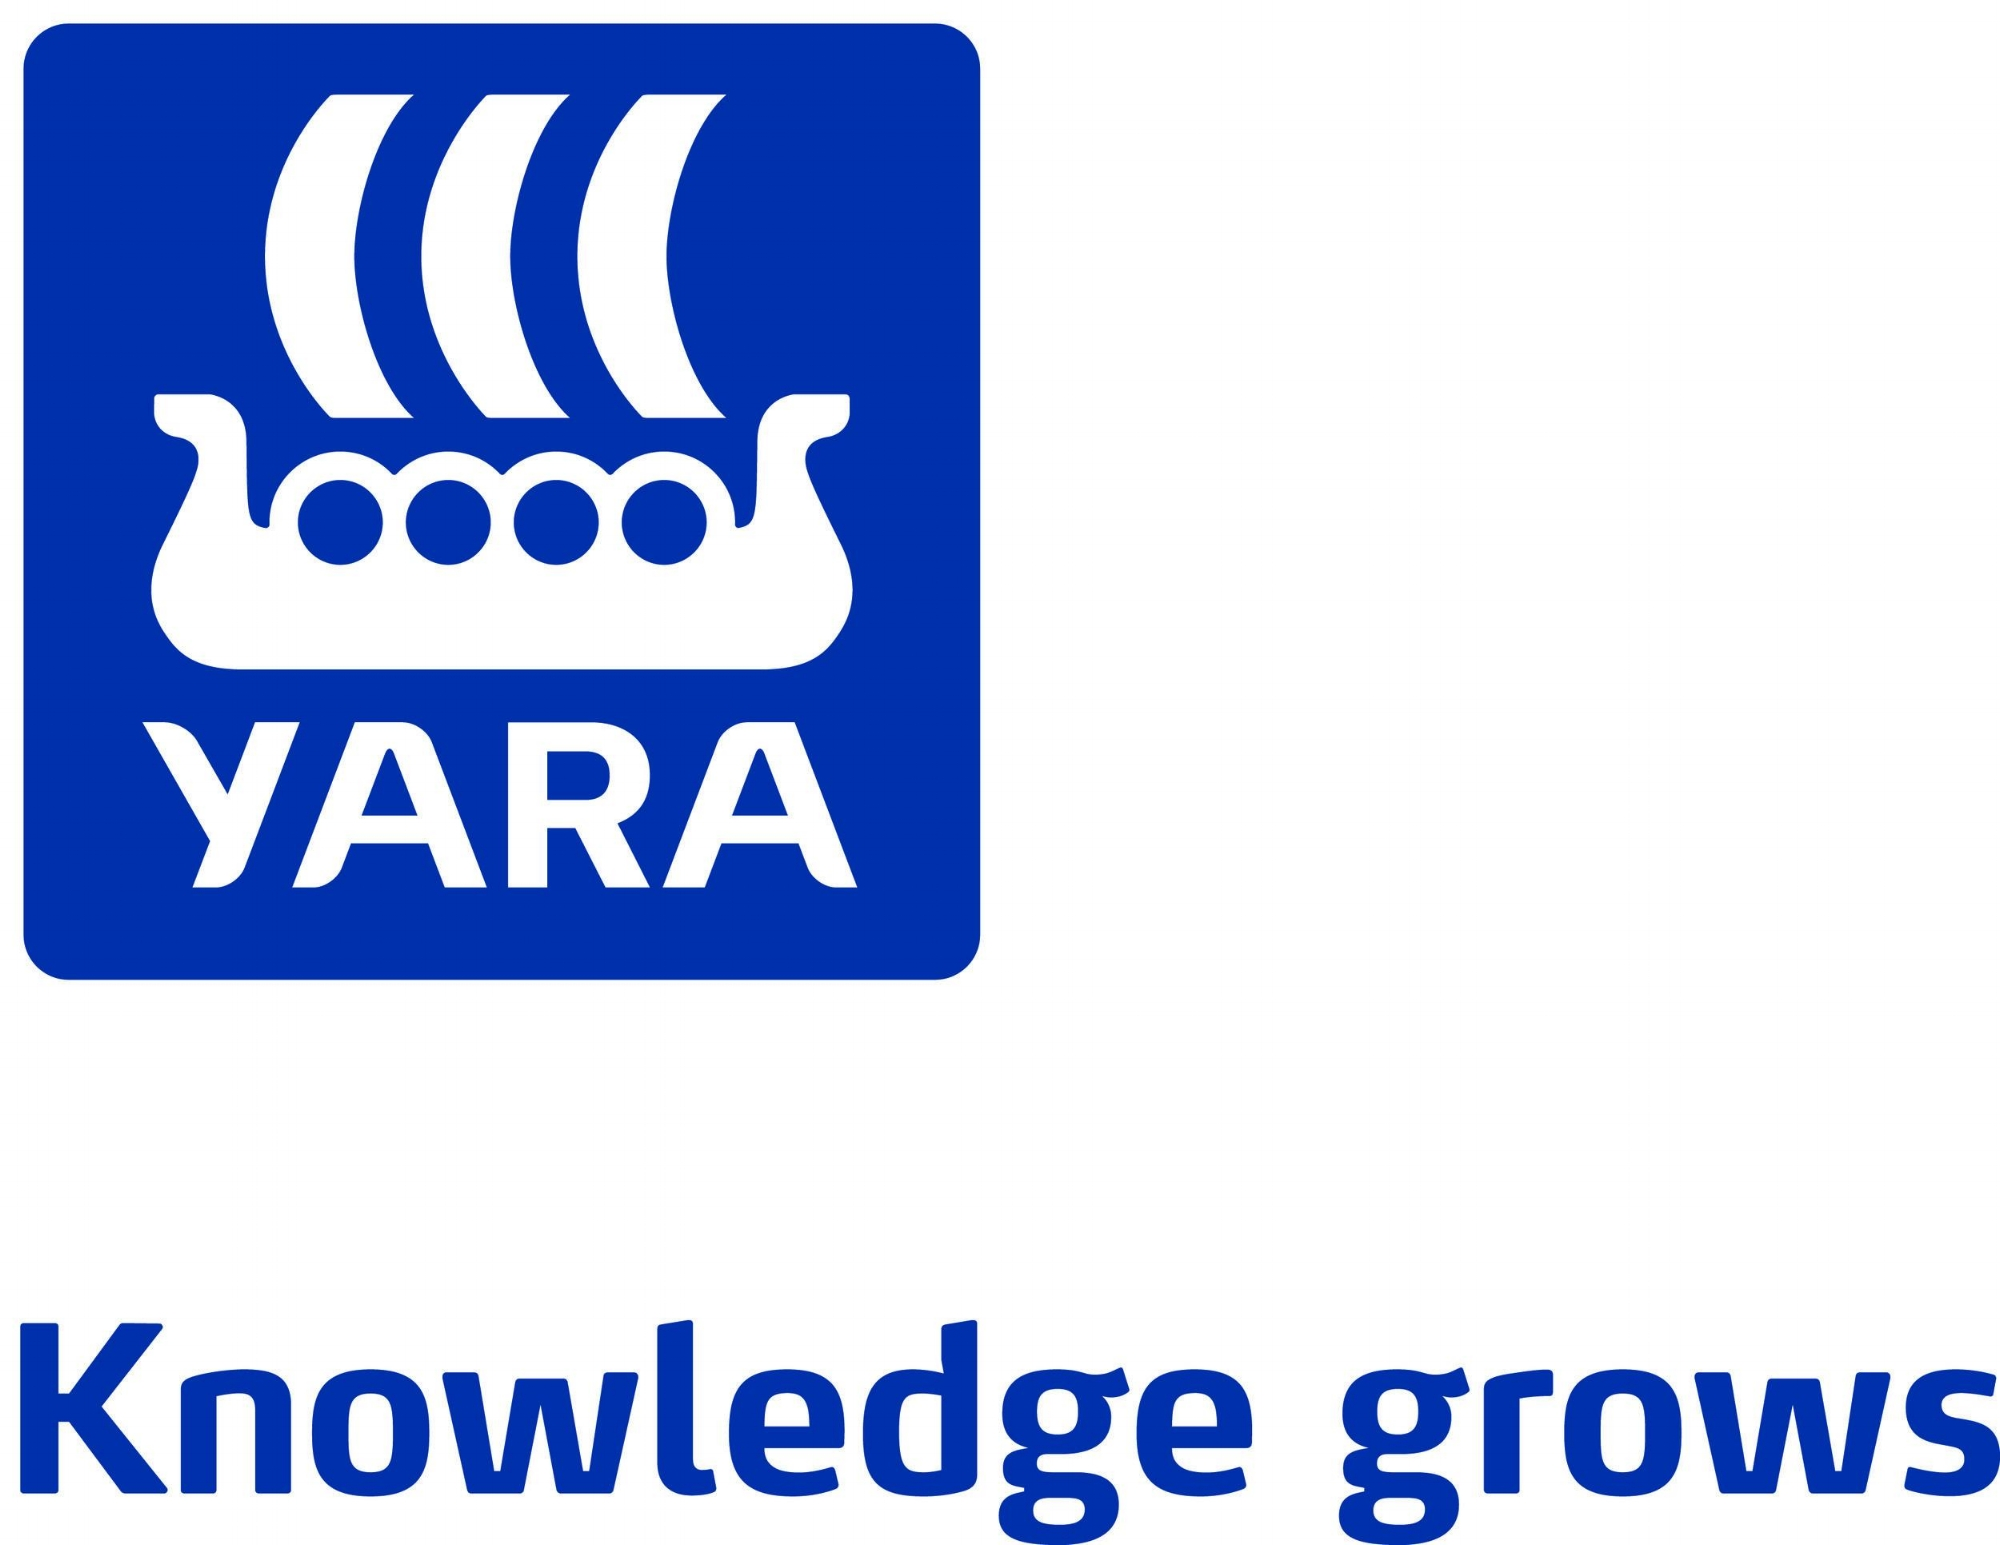 yara-logo-and-tagline-01 (1).jpg